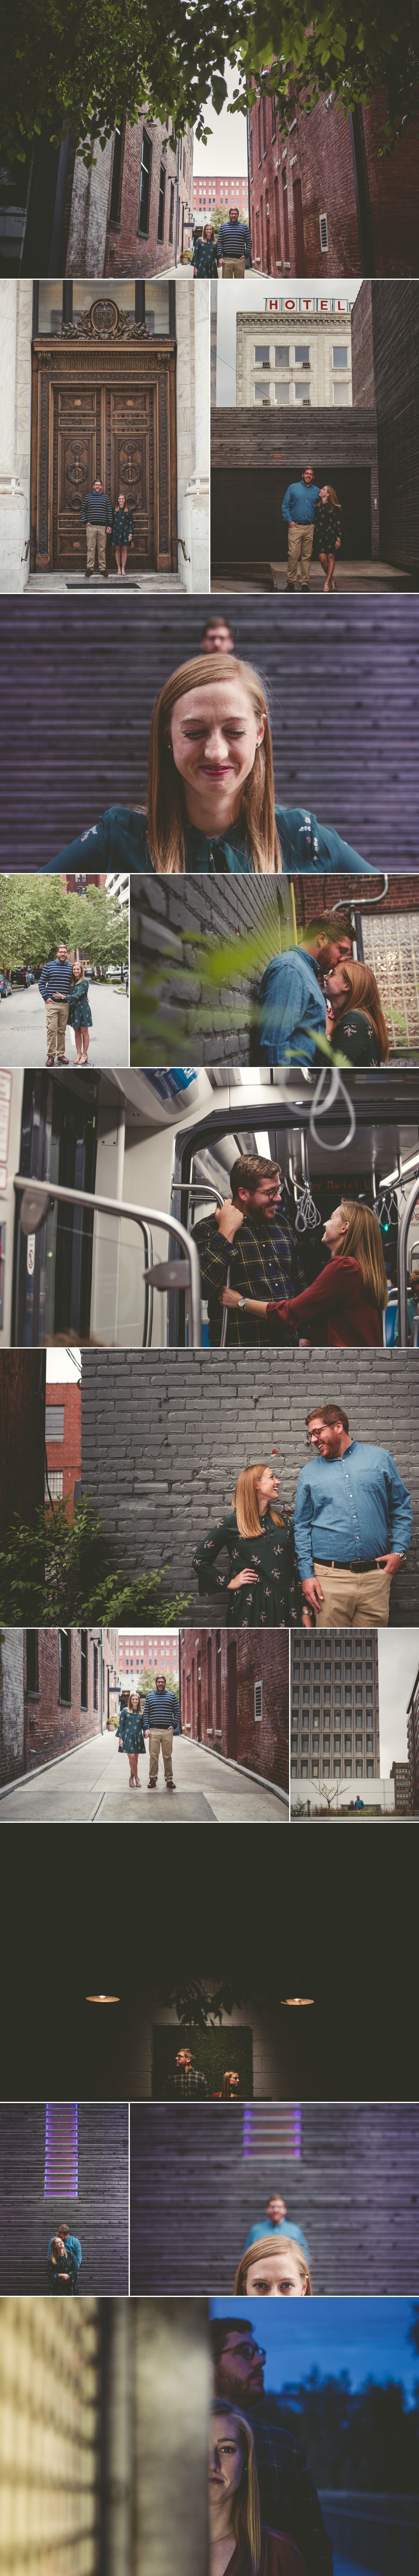 jason_domingues_photography_best_kansas_city_photographer_kc_engagement_session.JPG